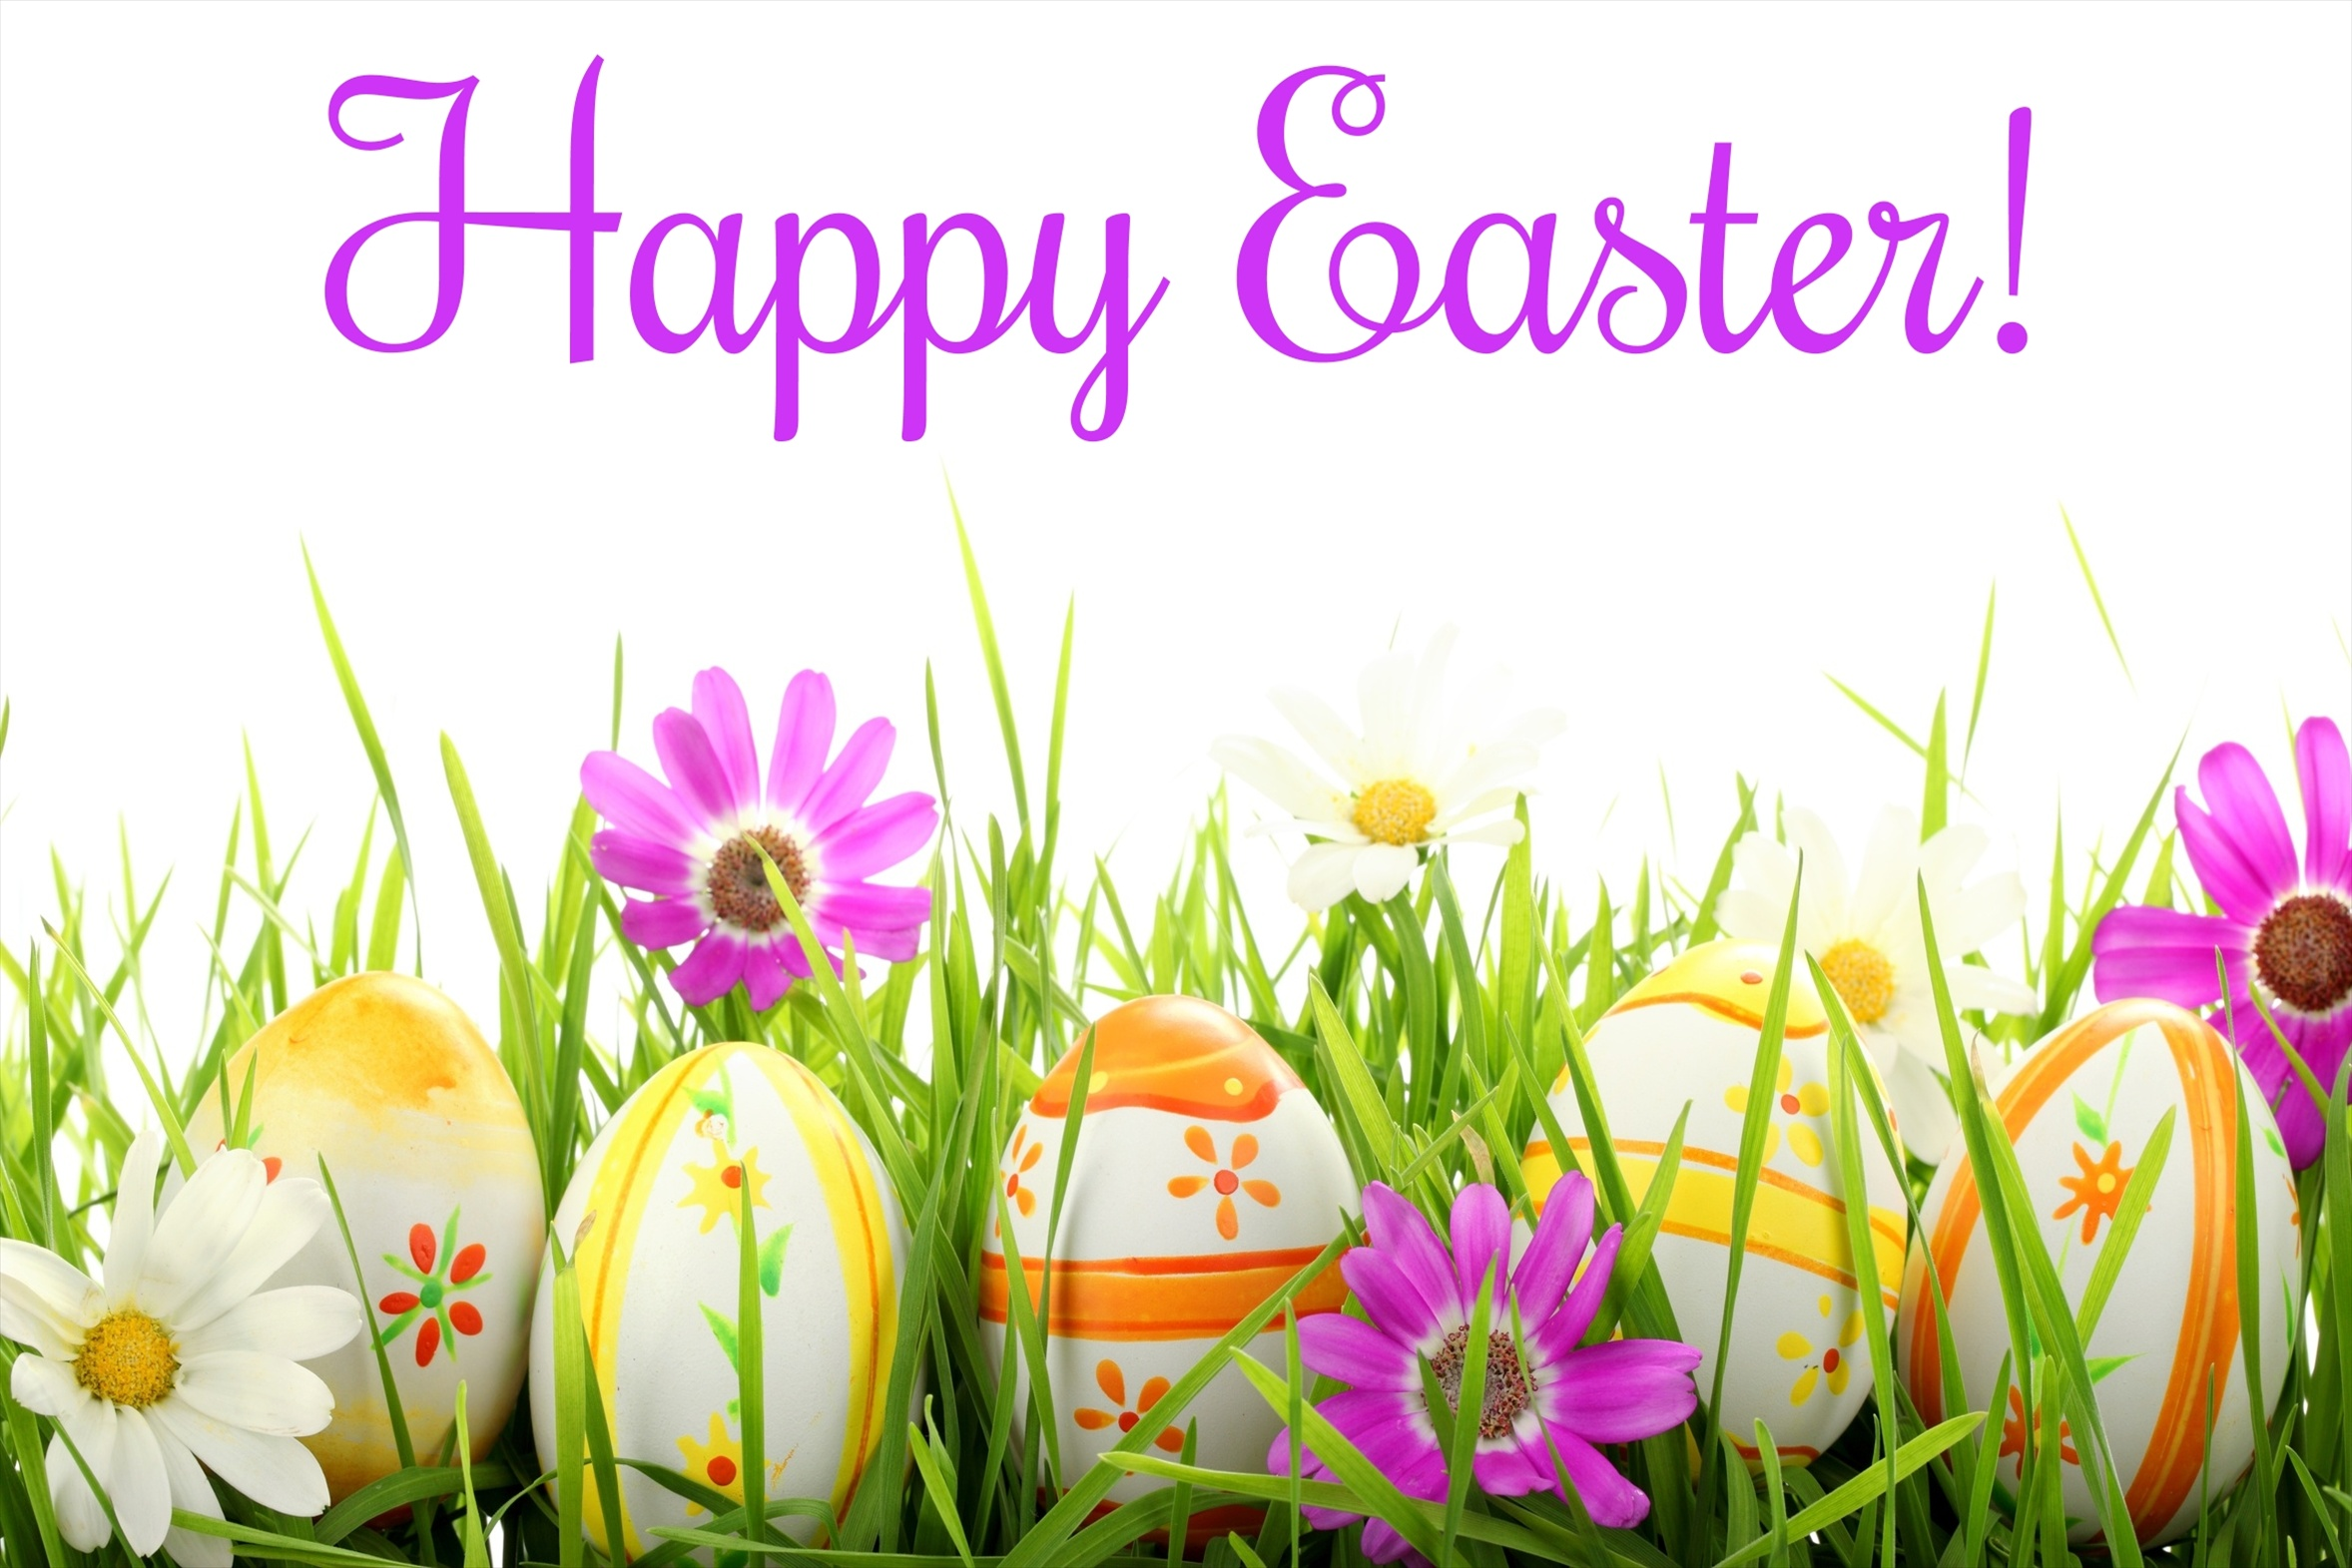 Quotes In Celebration Of Easter